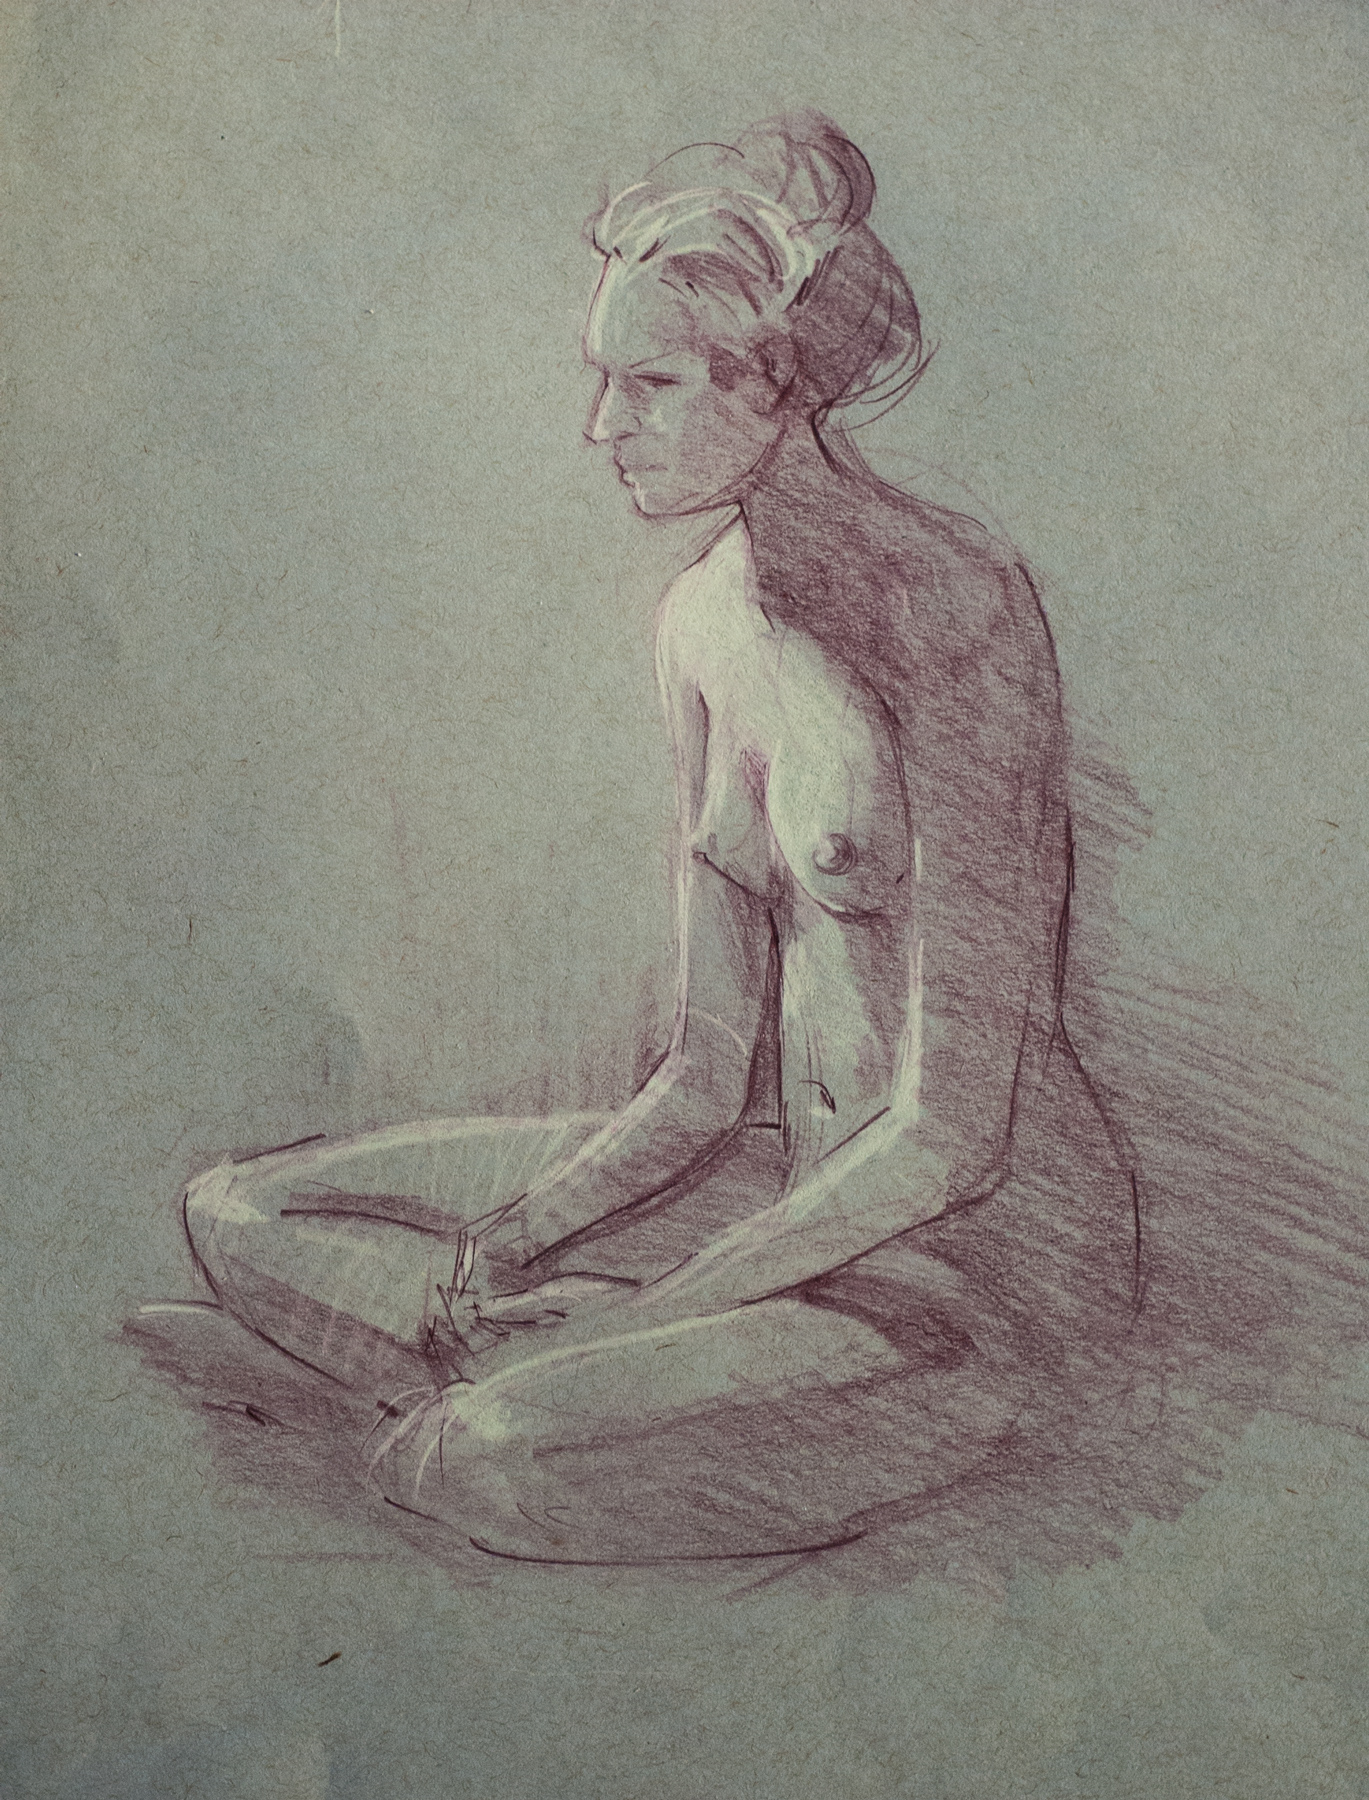 20-minute figure study. Col-erase pencil and white charcoal on toned gray paper.